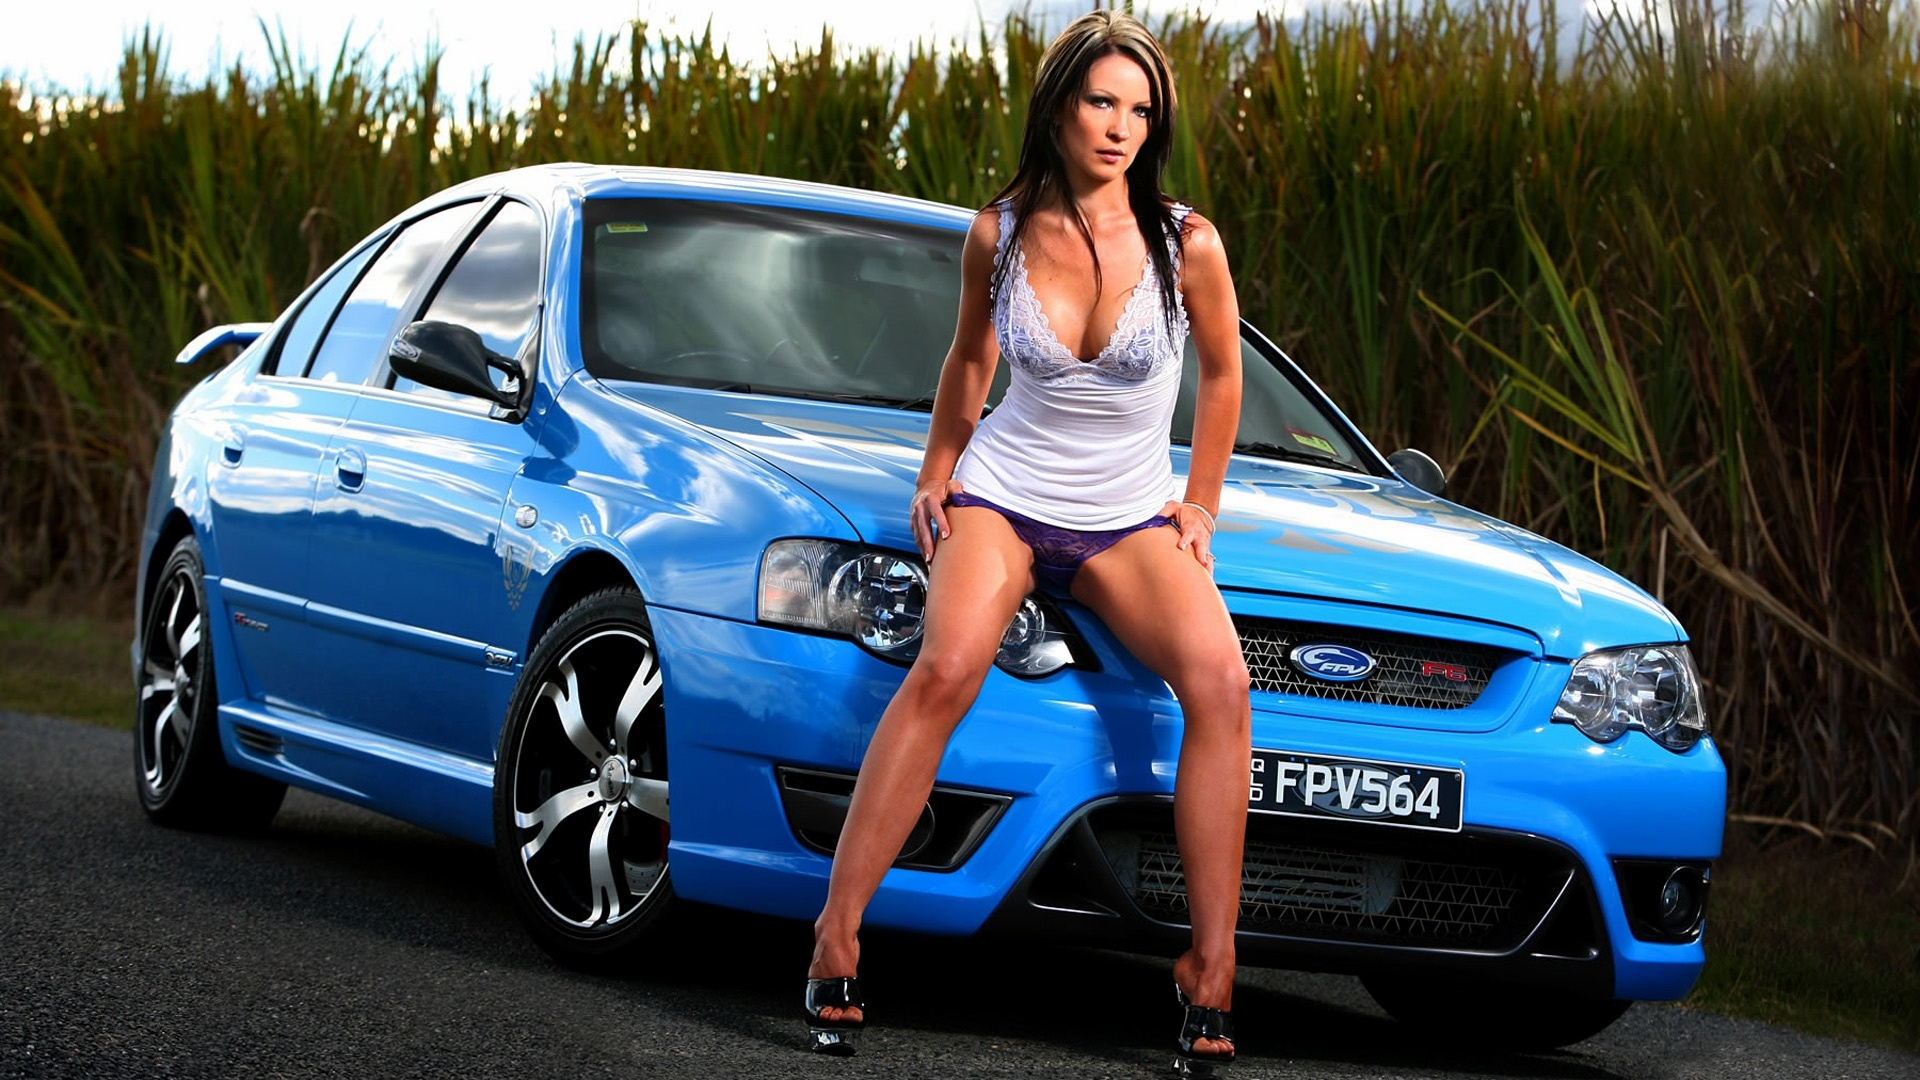 Samsung Note 2 Car Wallpaper Sexy Girls And Stunning Cars Hd Wallpapers All Hd Wallpapers